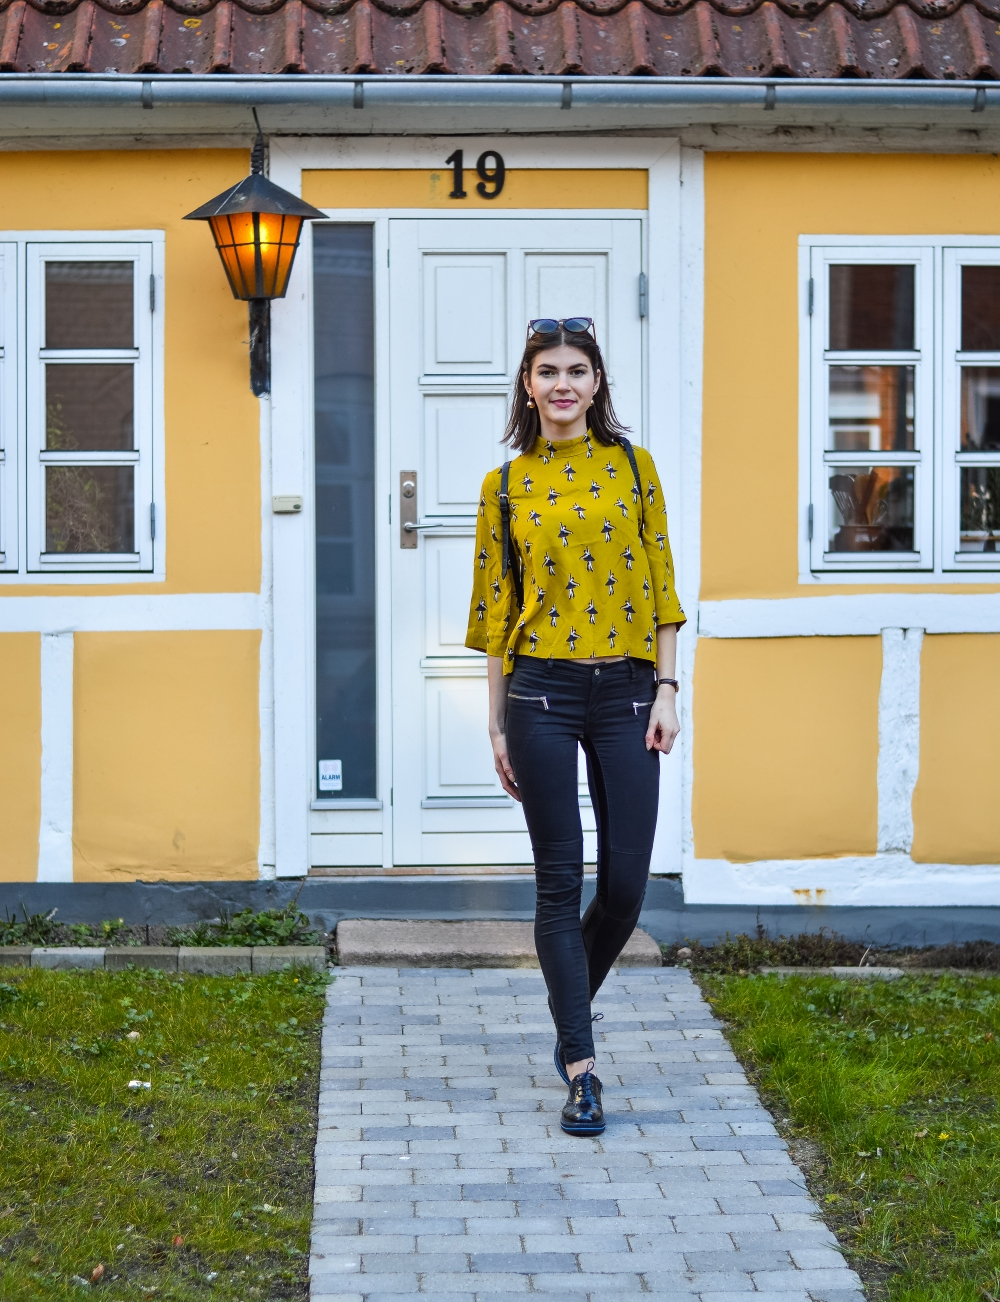 cafe gran,how to wear yellow mustard,flowers,spring is here,mustard yellow,zara backpack,denmark horsens, clove pink,carnation,glamthug blog,daily style